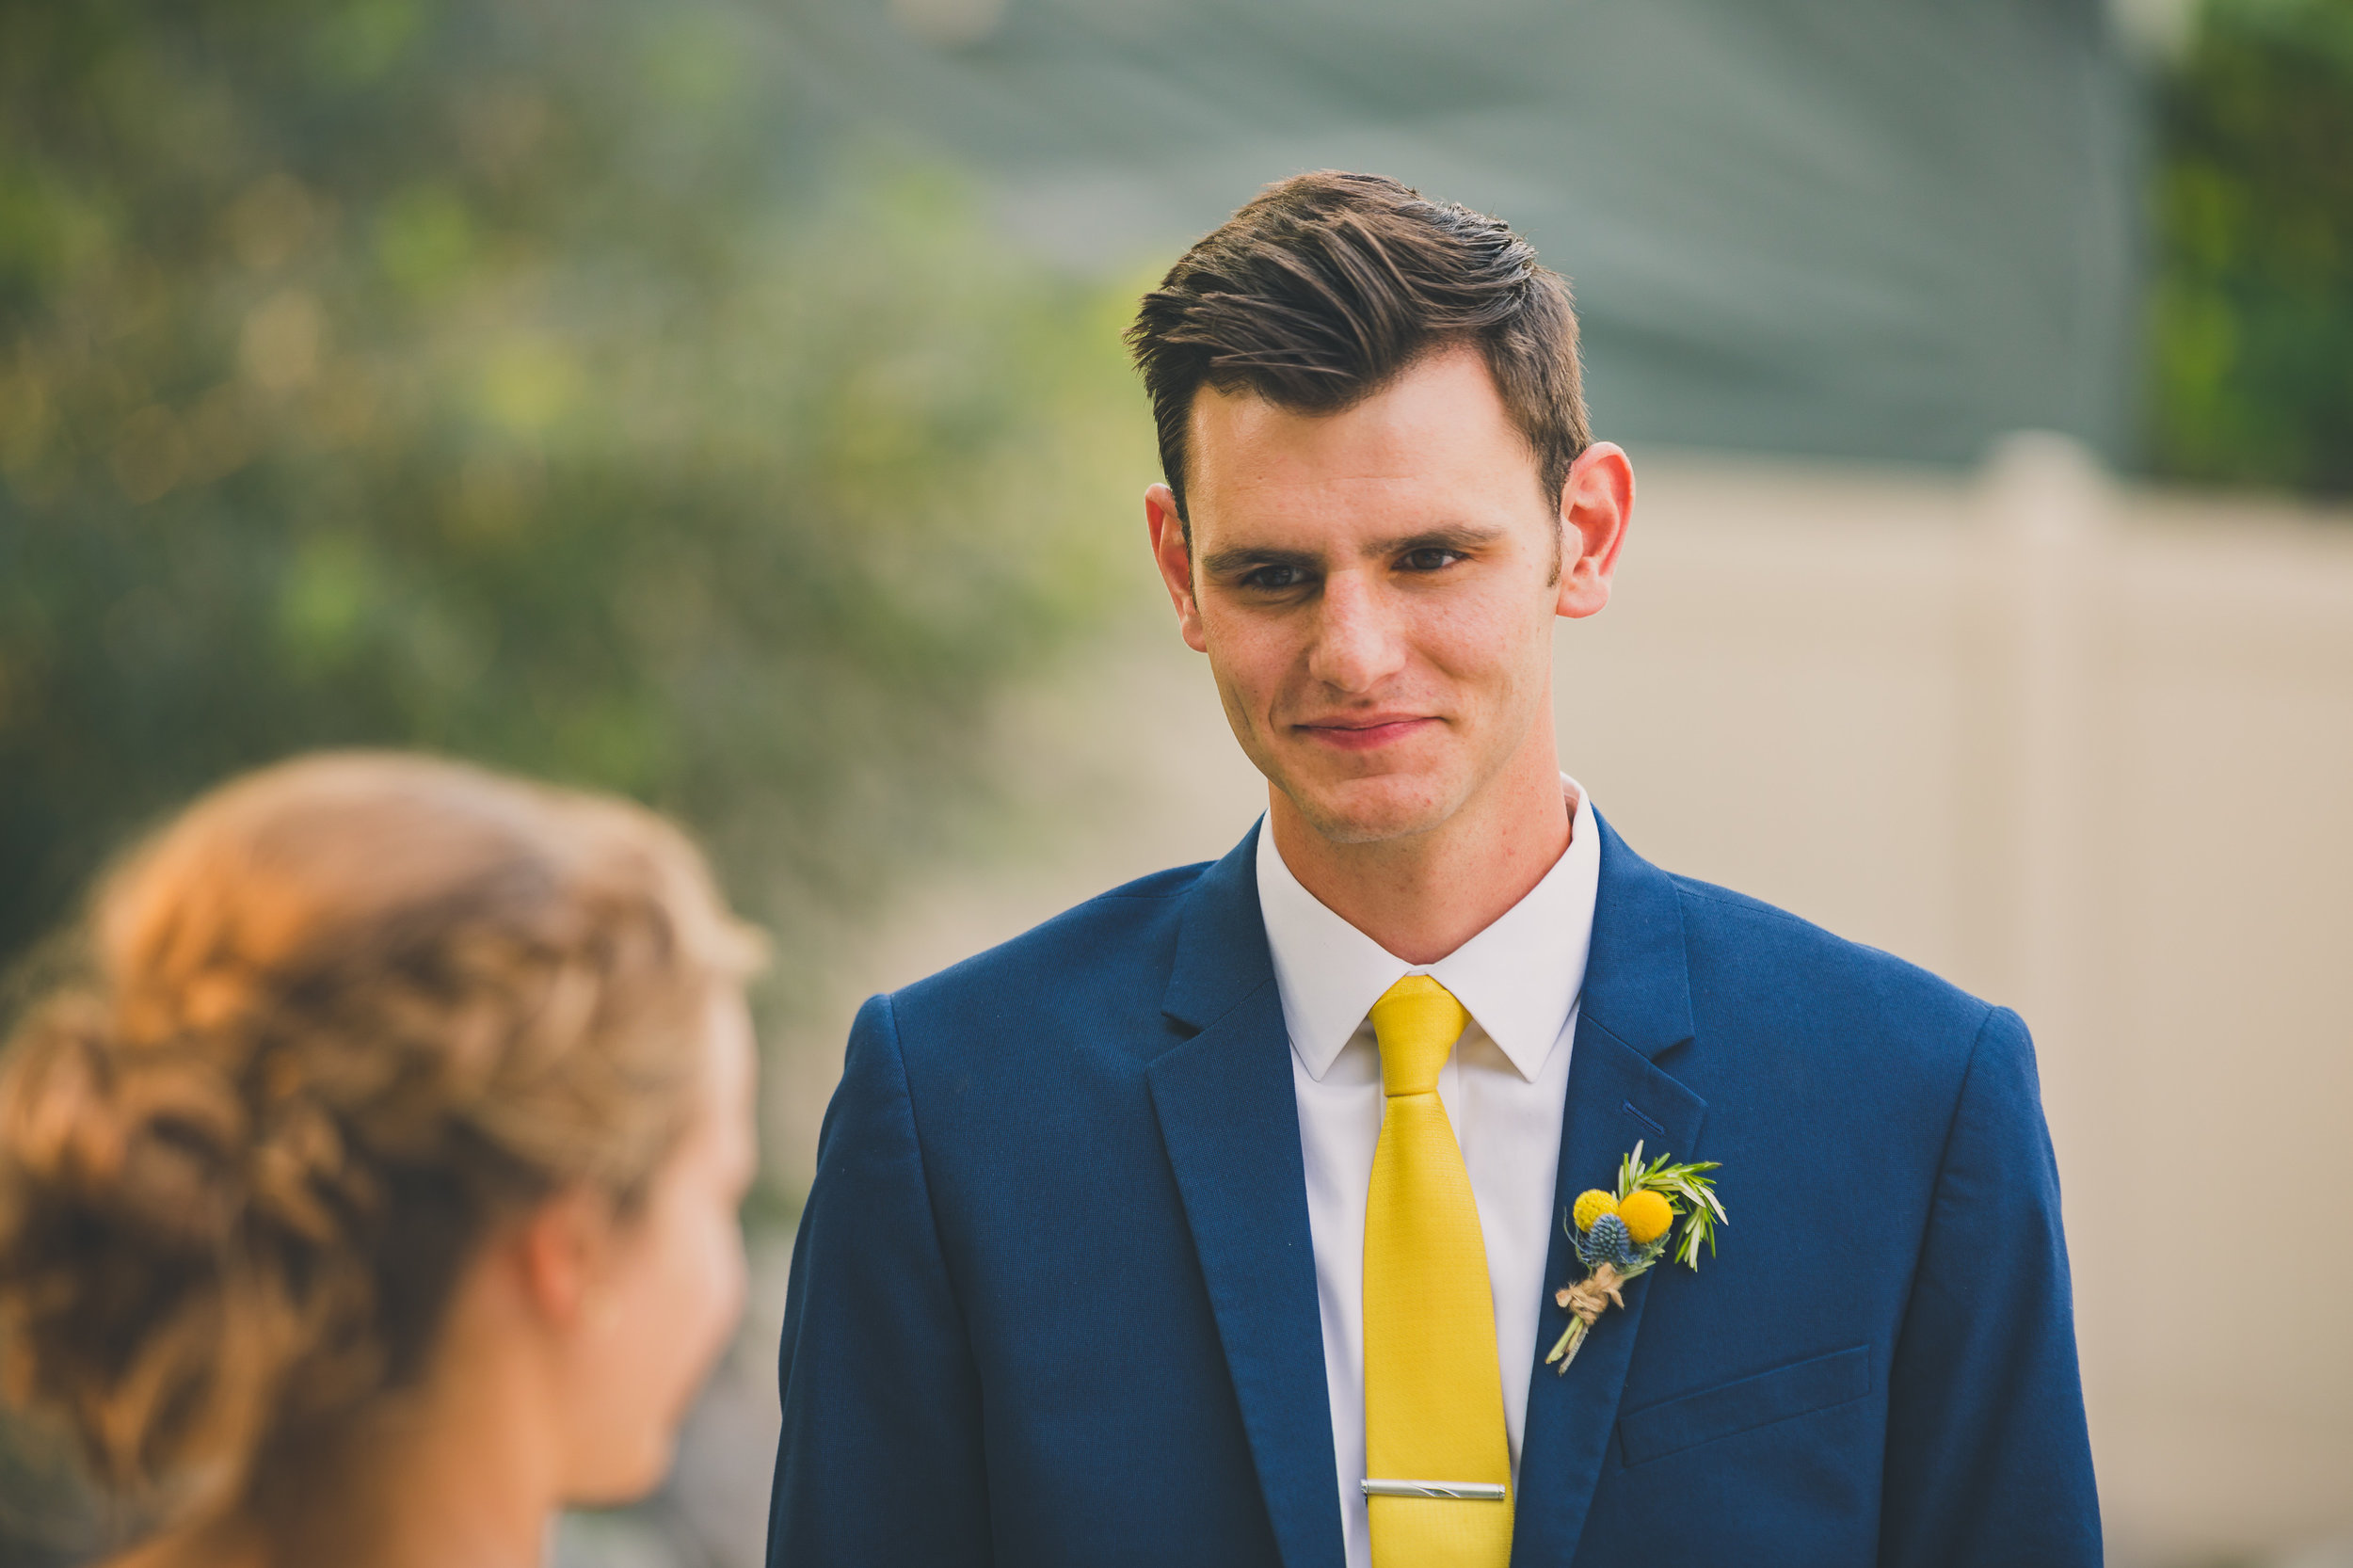 SydneyAndrew_Wed563.jpg